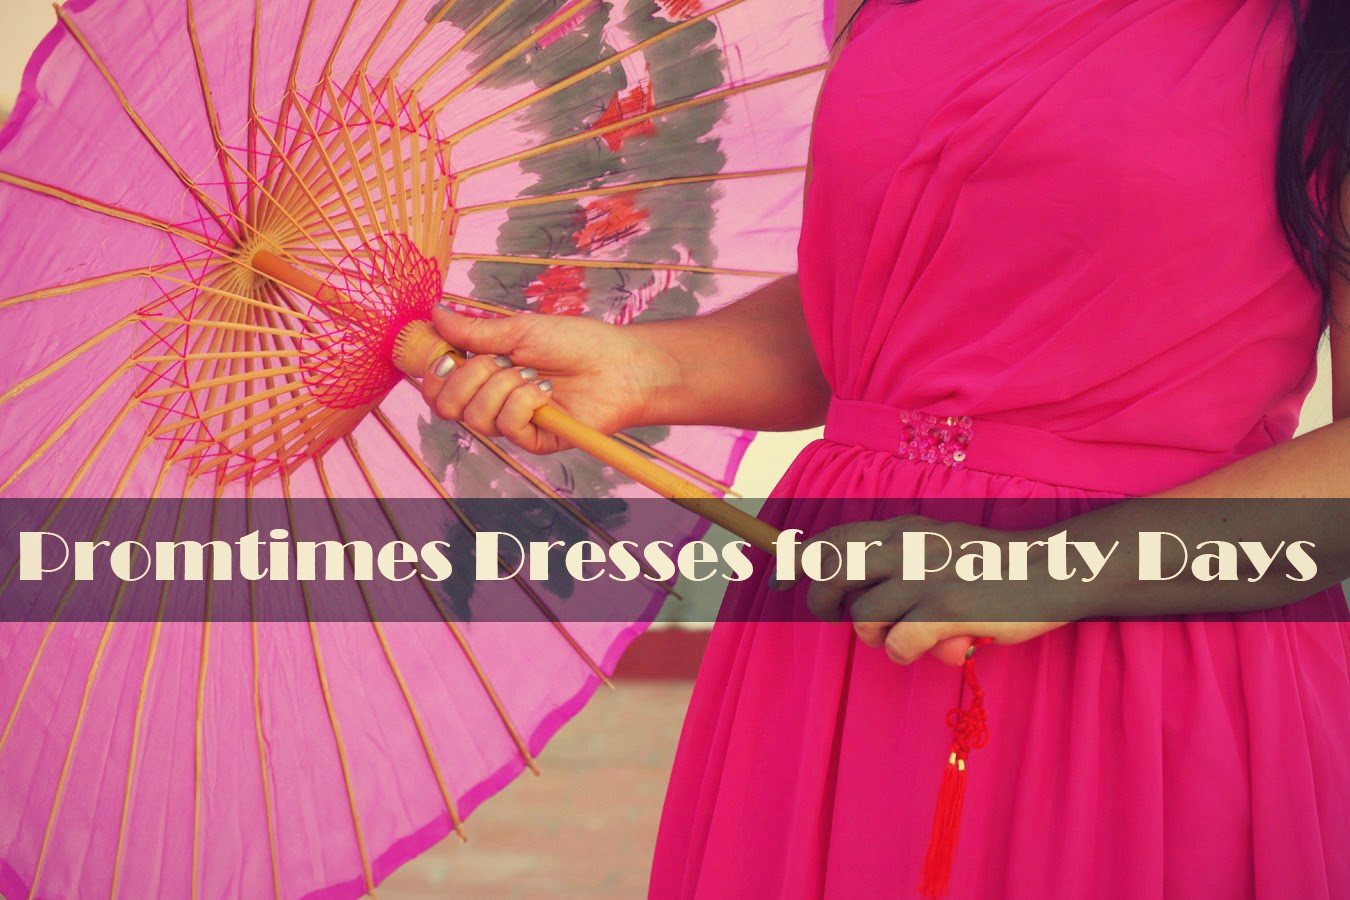 Promtimes+Dresses+for+Party+Days